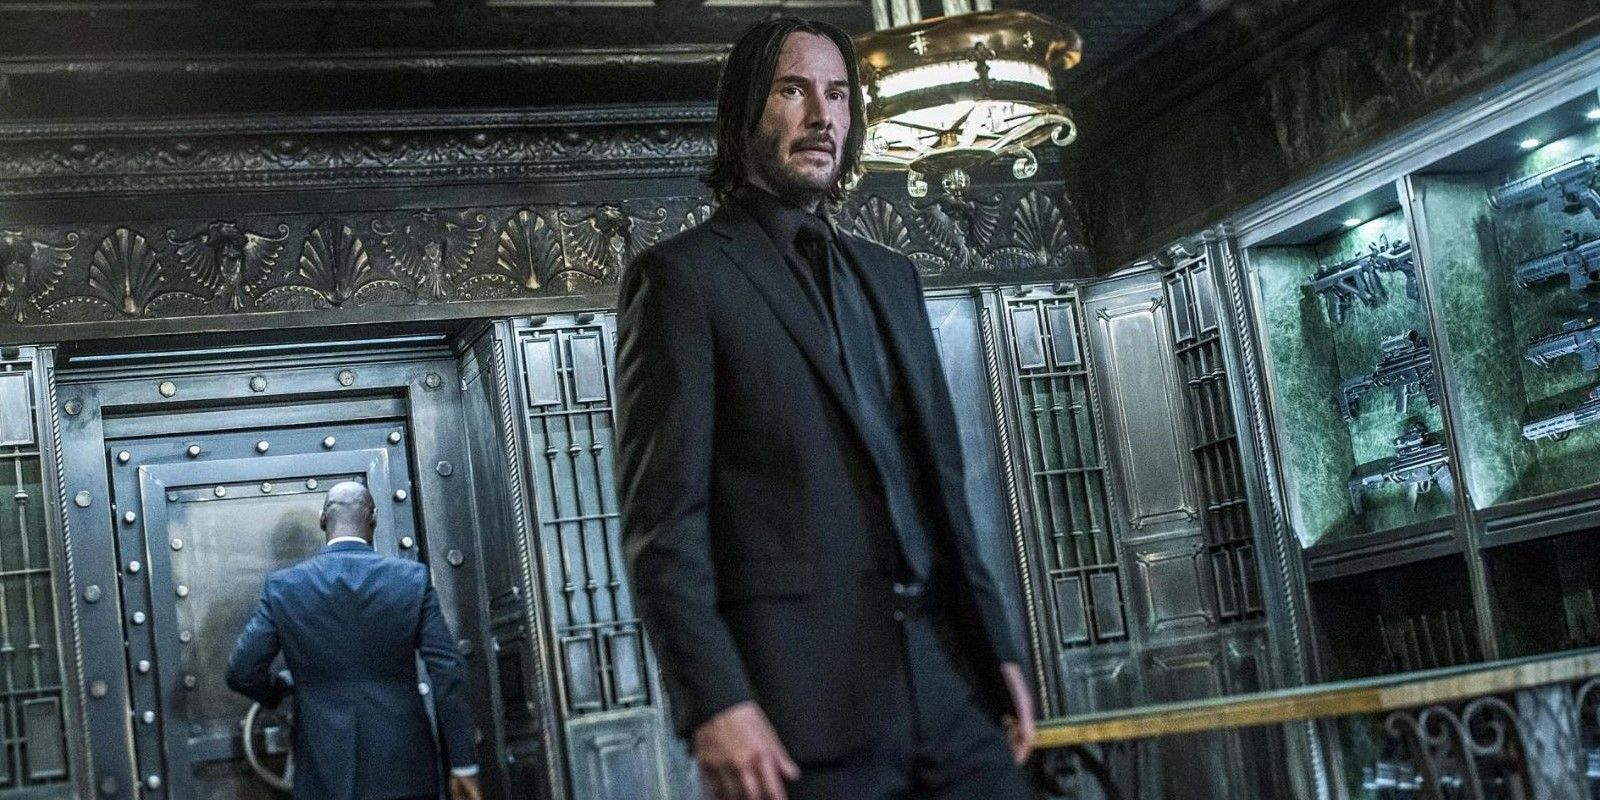 Behind The Scenes Details Surrounding Some Of Keanu Reeves' Most Interesting Roles